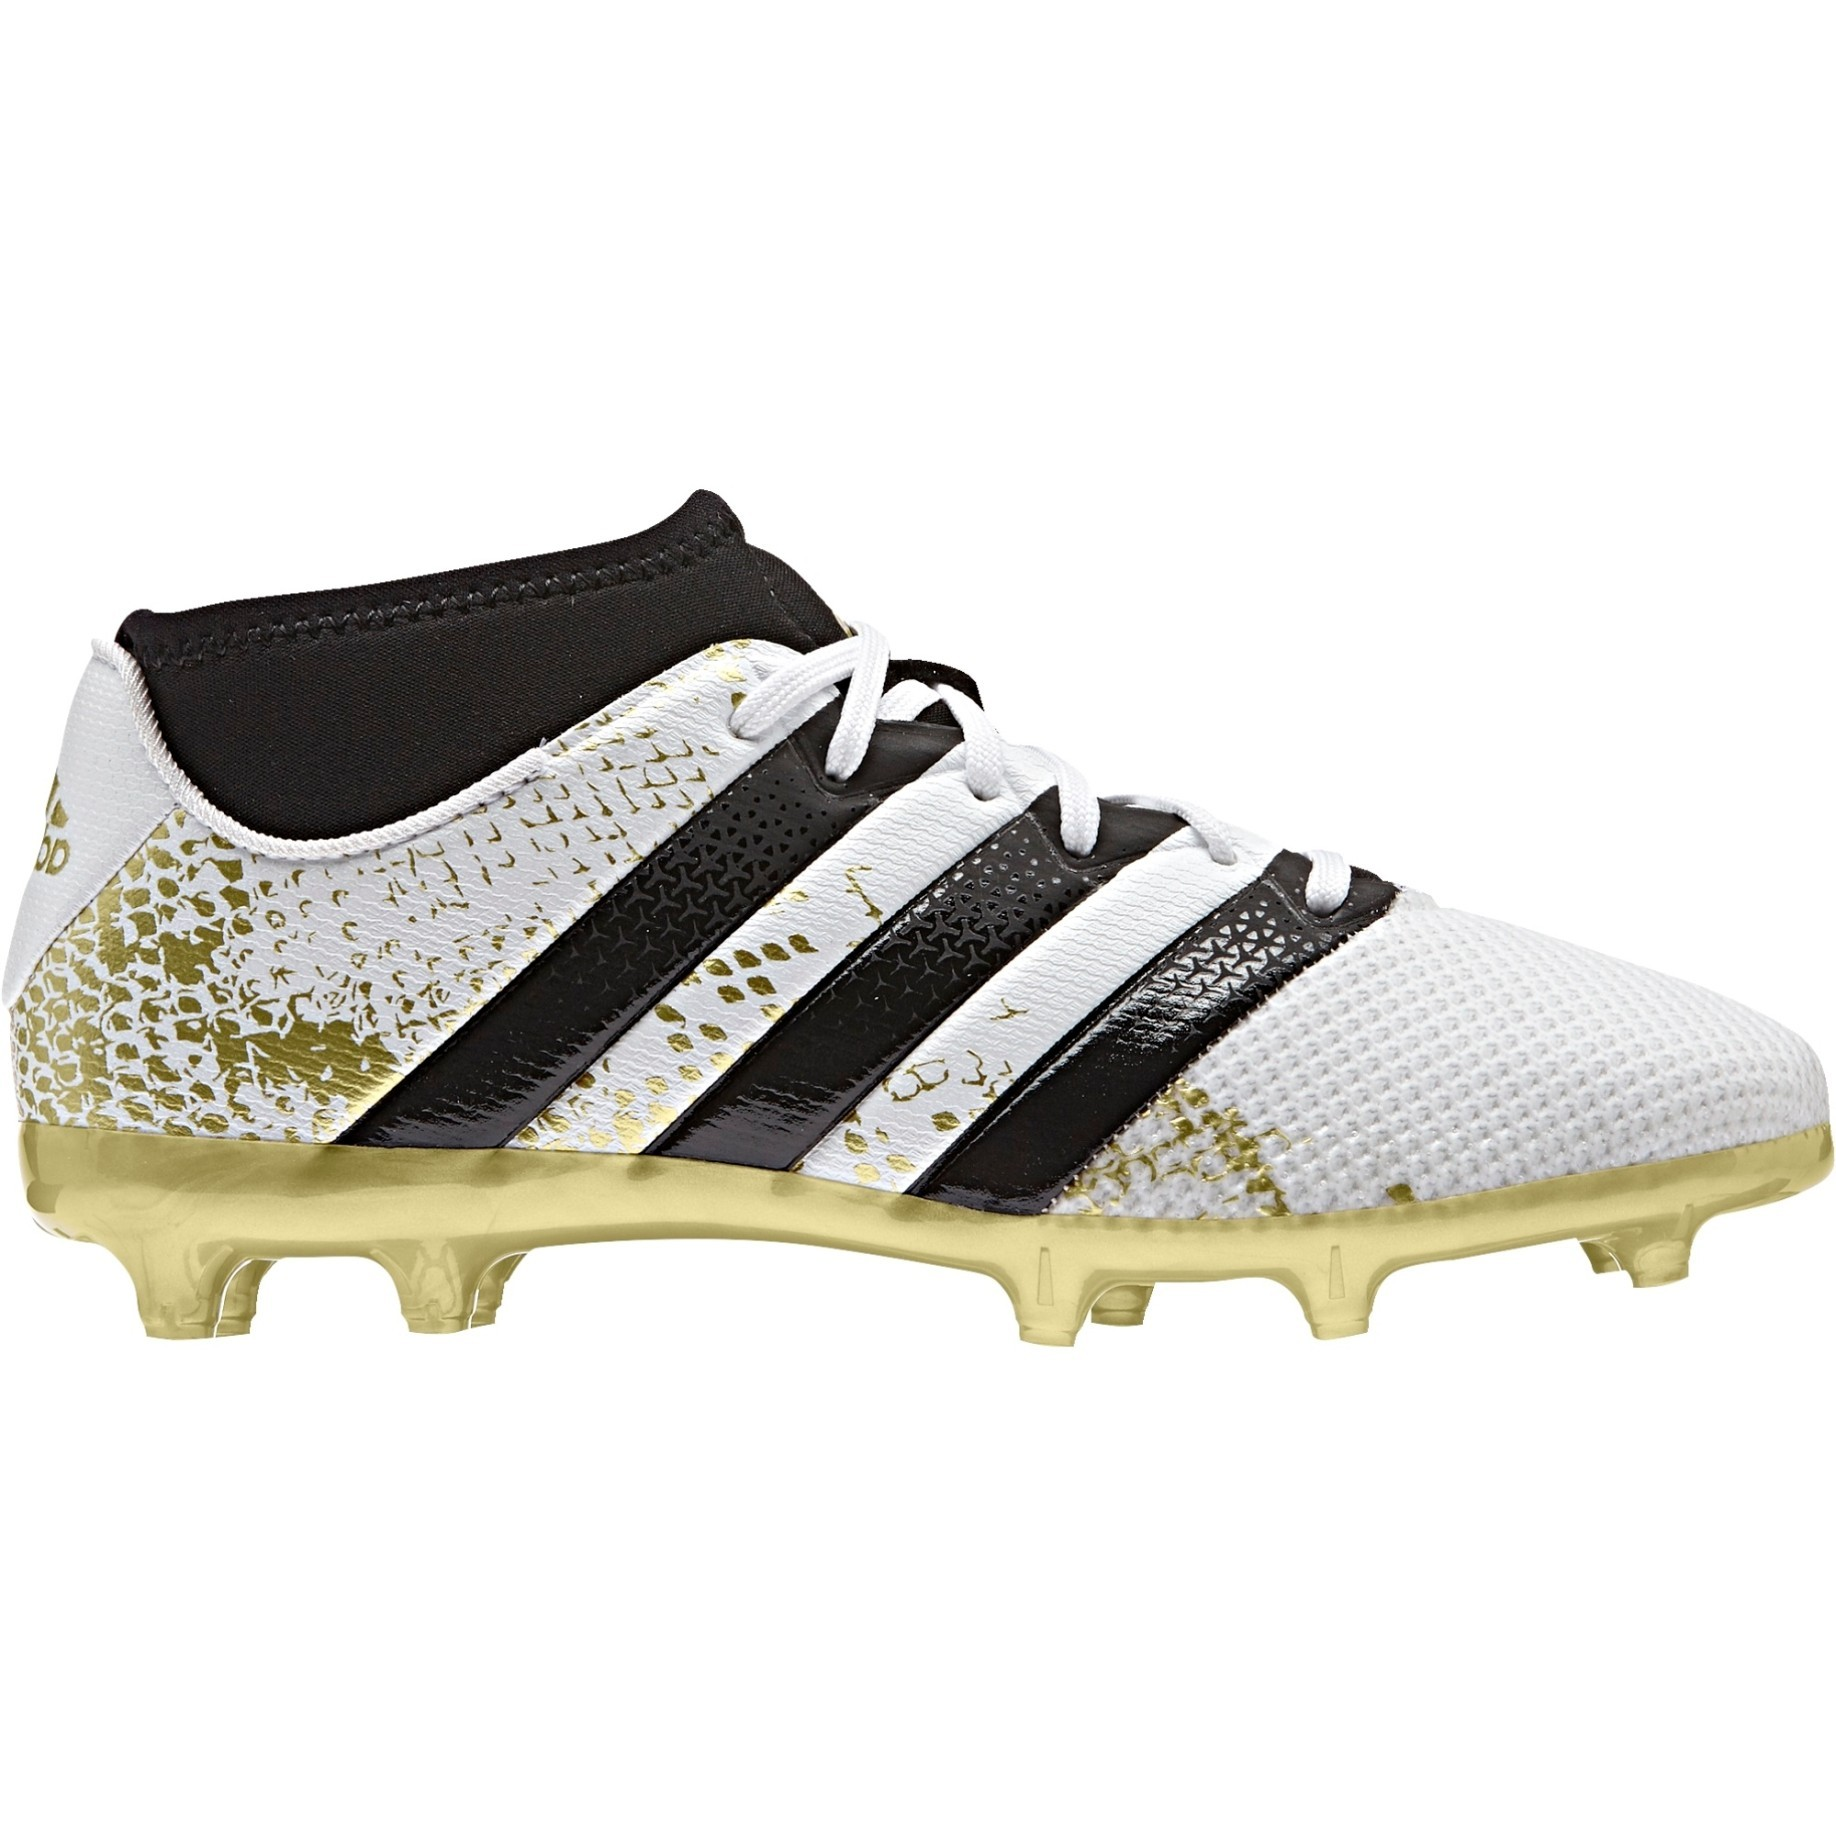 the best attitude c96bb 656ad Soccer shoes Boy Adidas Ace 16.3 Primemesh FGAG colore White Yellow -  Adidas - SportIT.com